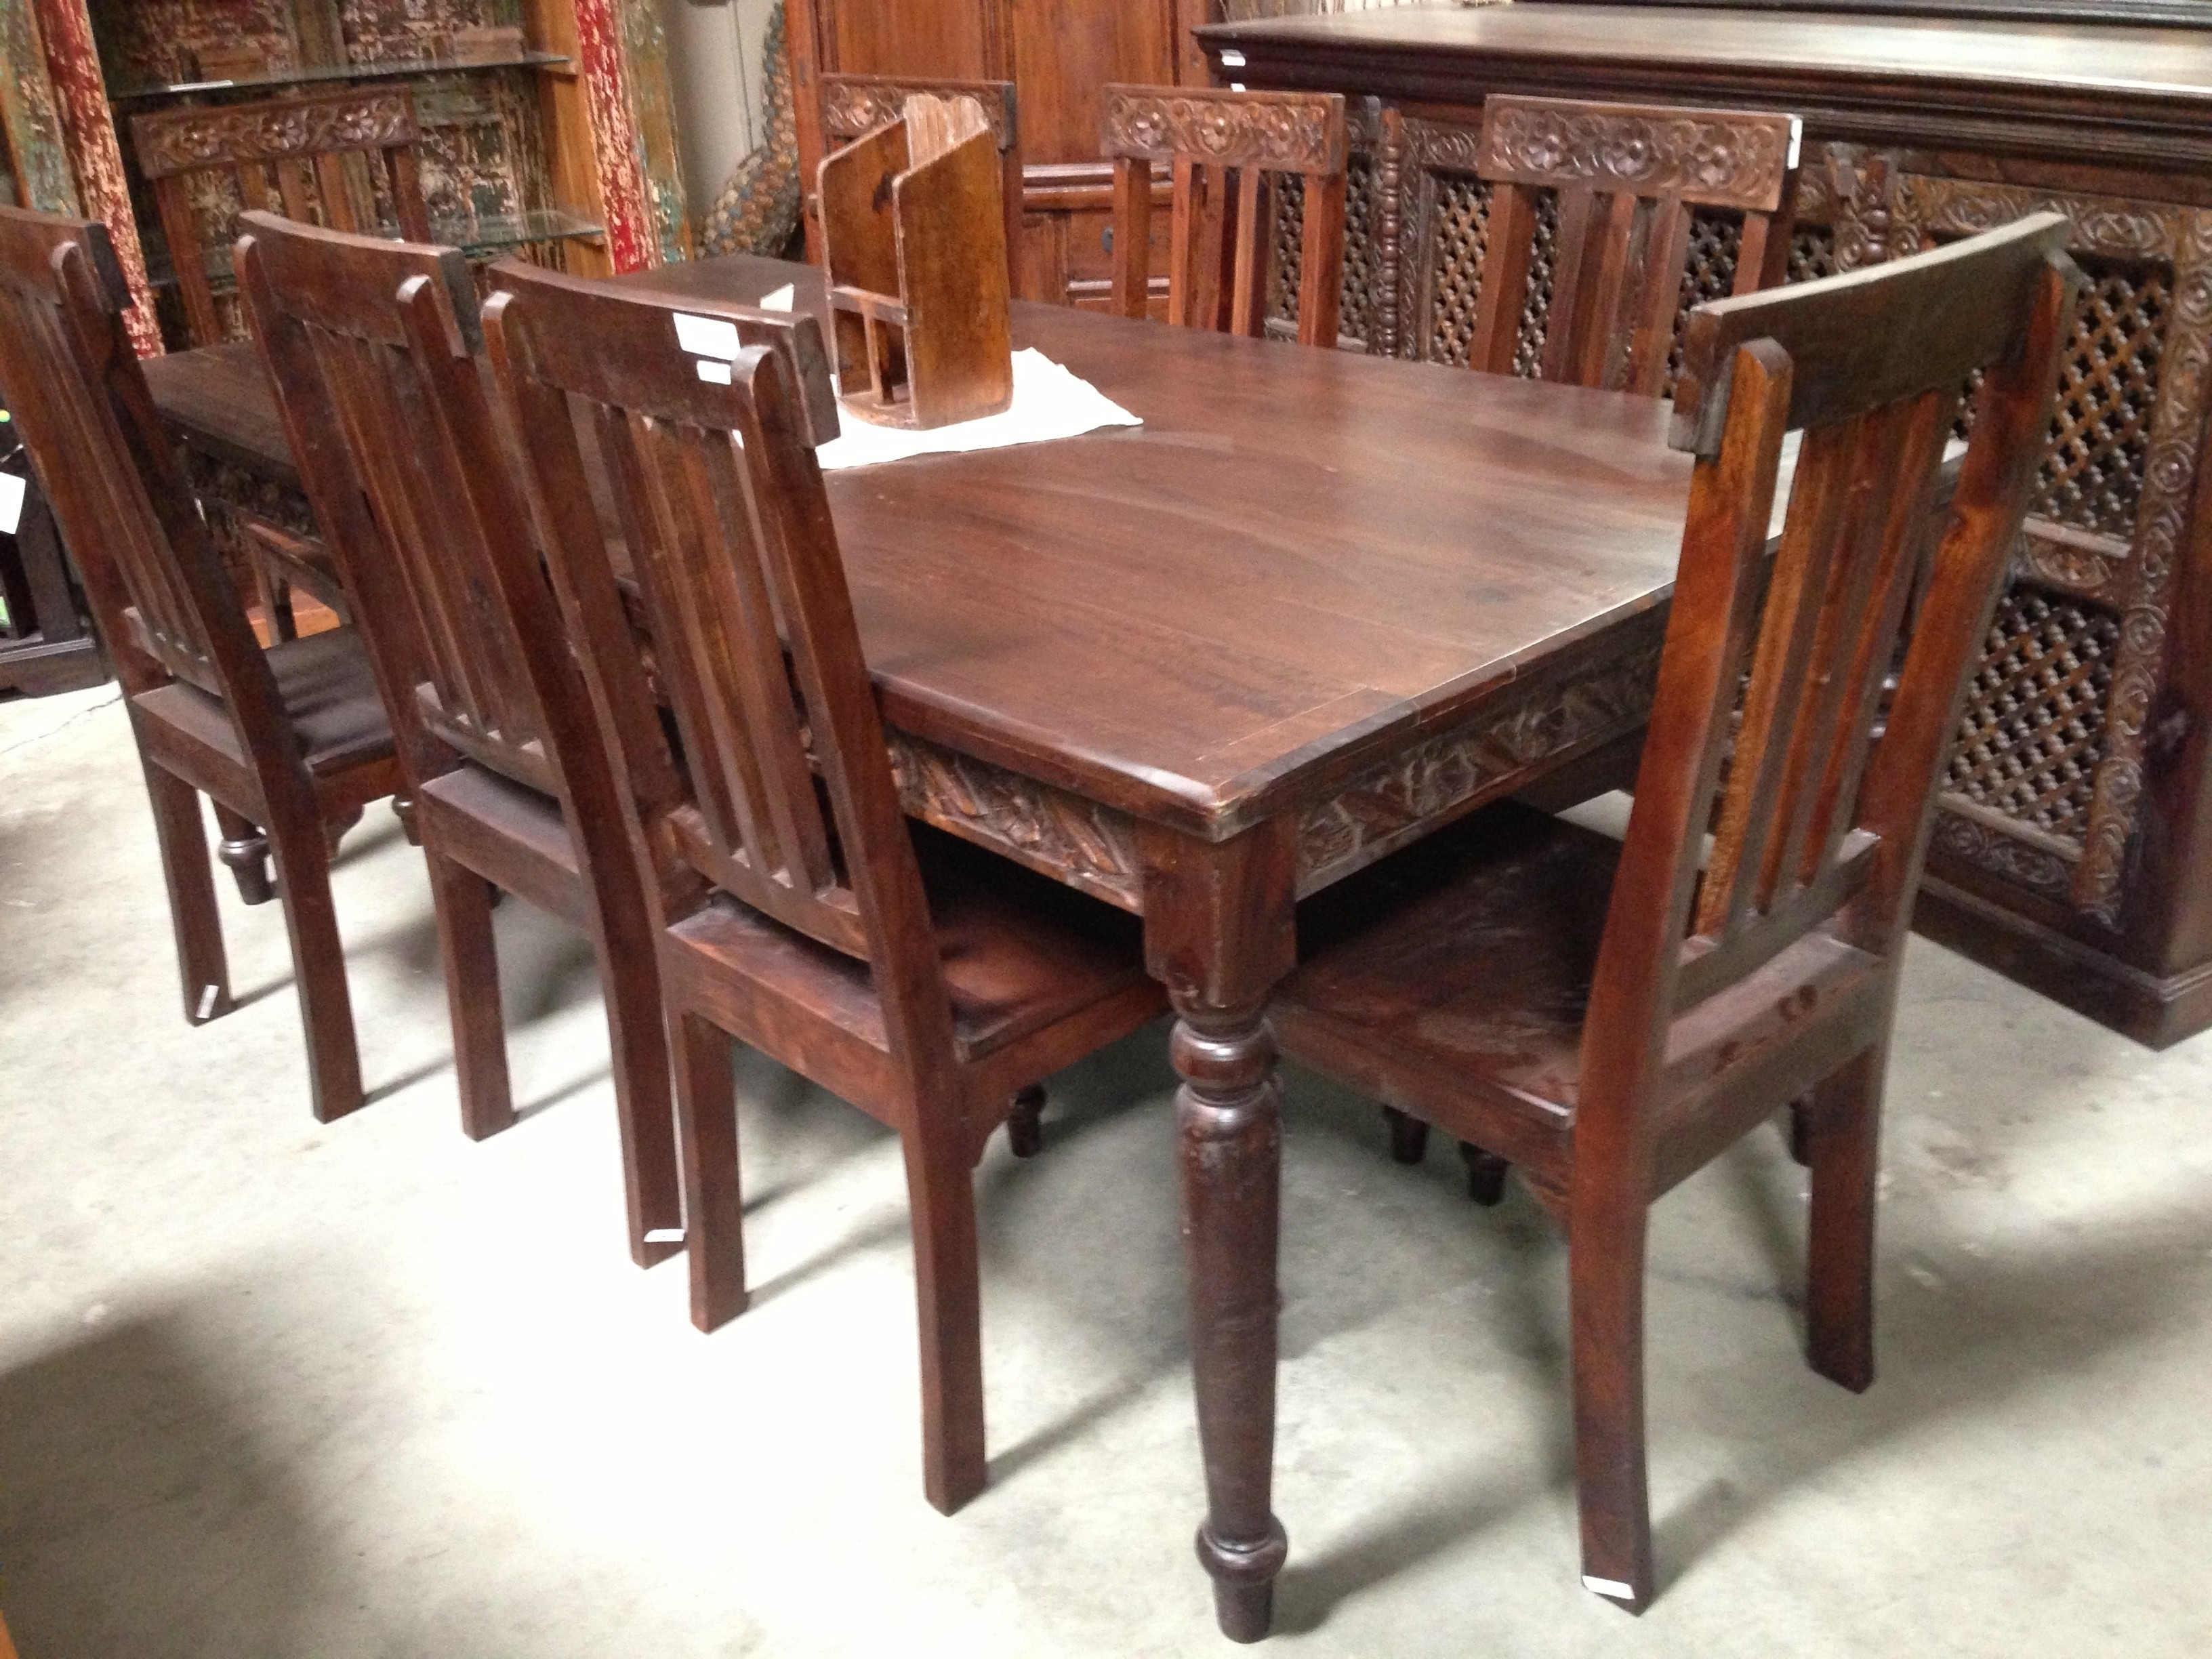 The 25 Fresh Indian Dining Table – Welovedandelion Throughout Well Known Indian Wood Dining Tables (View 18 of 25)